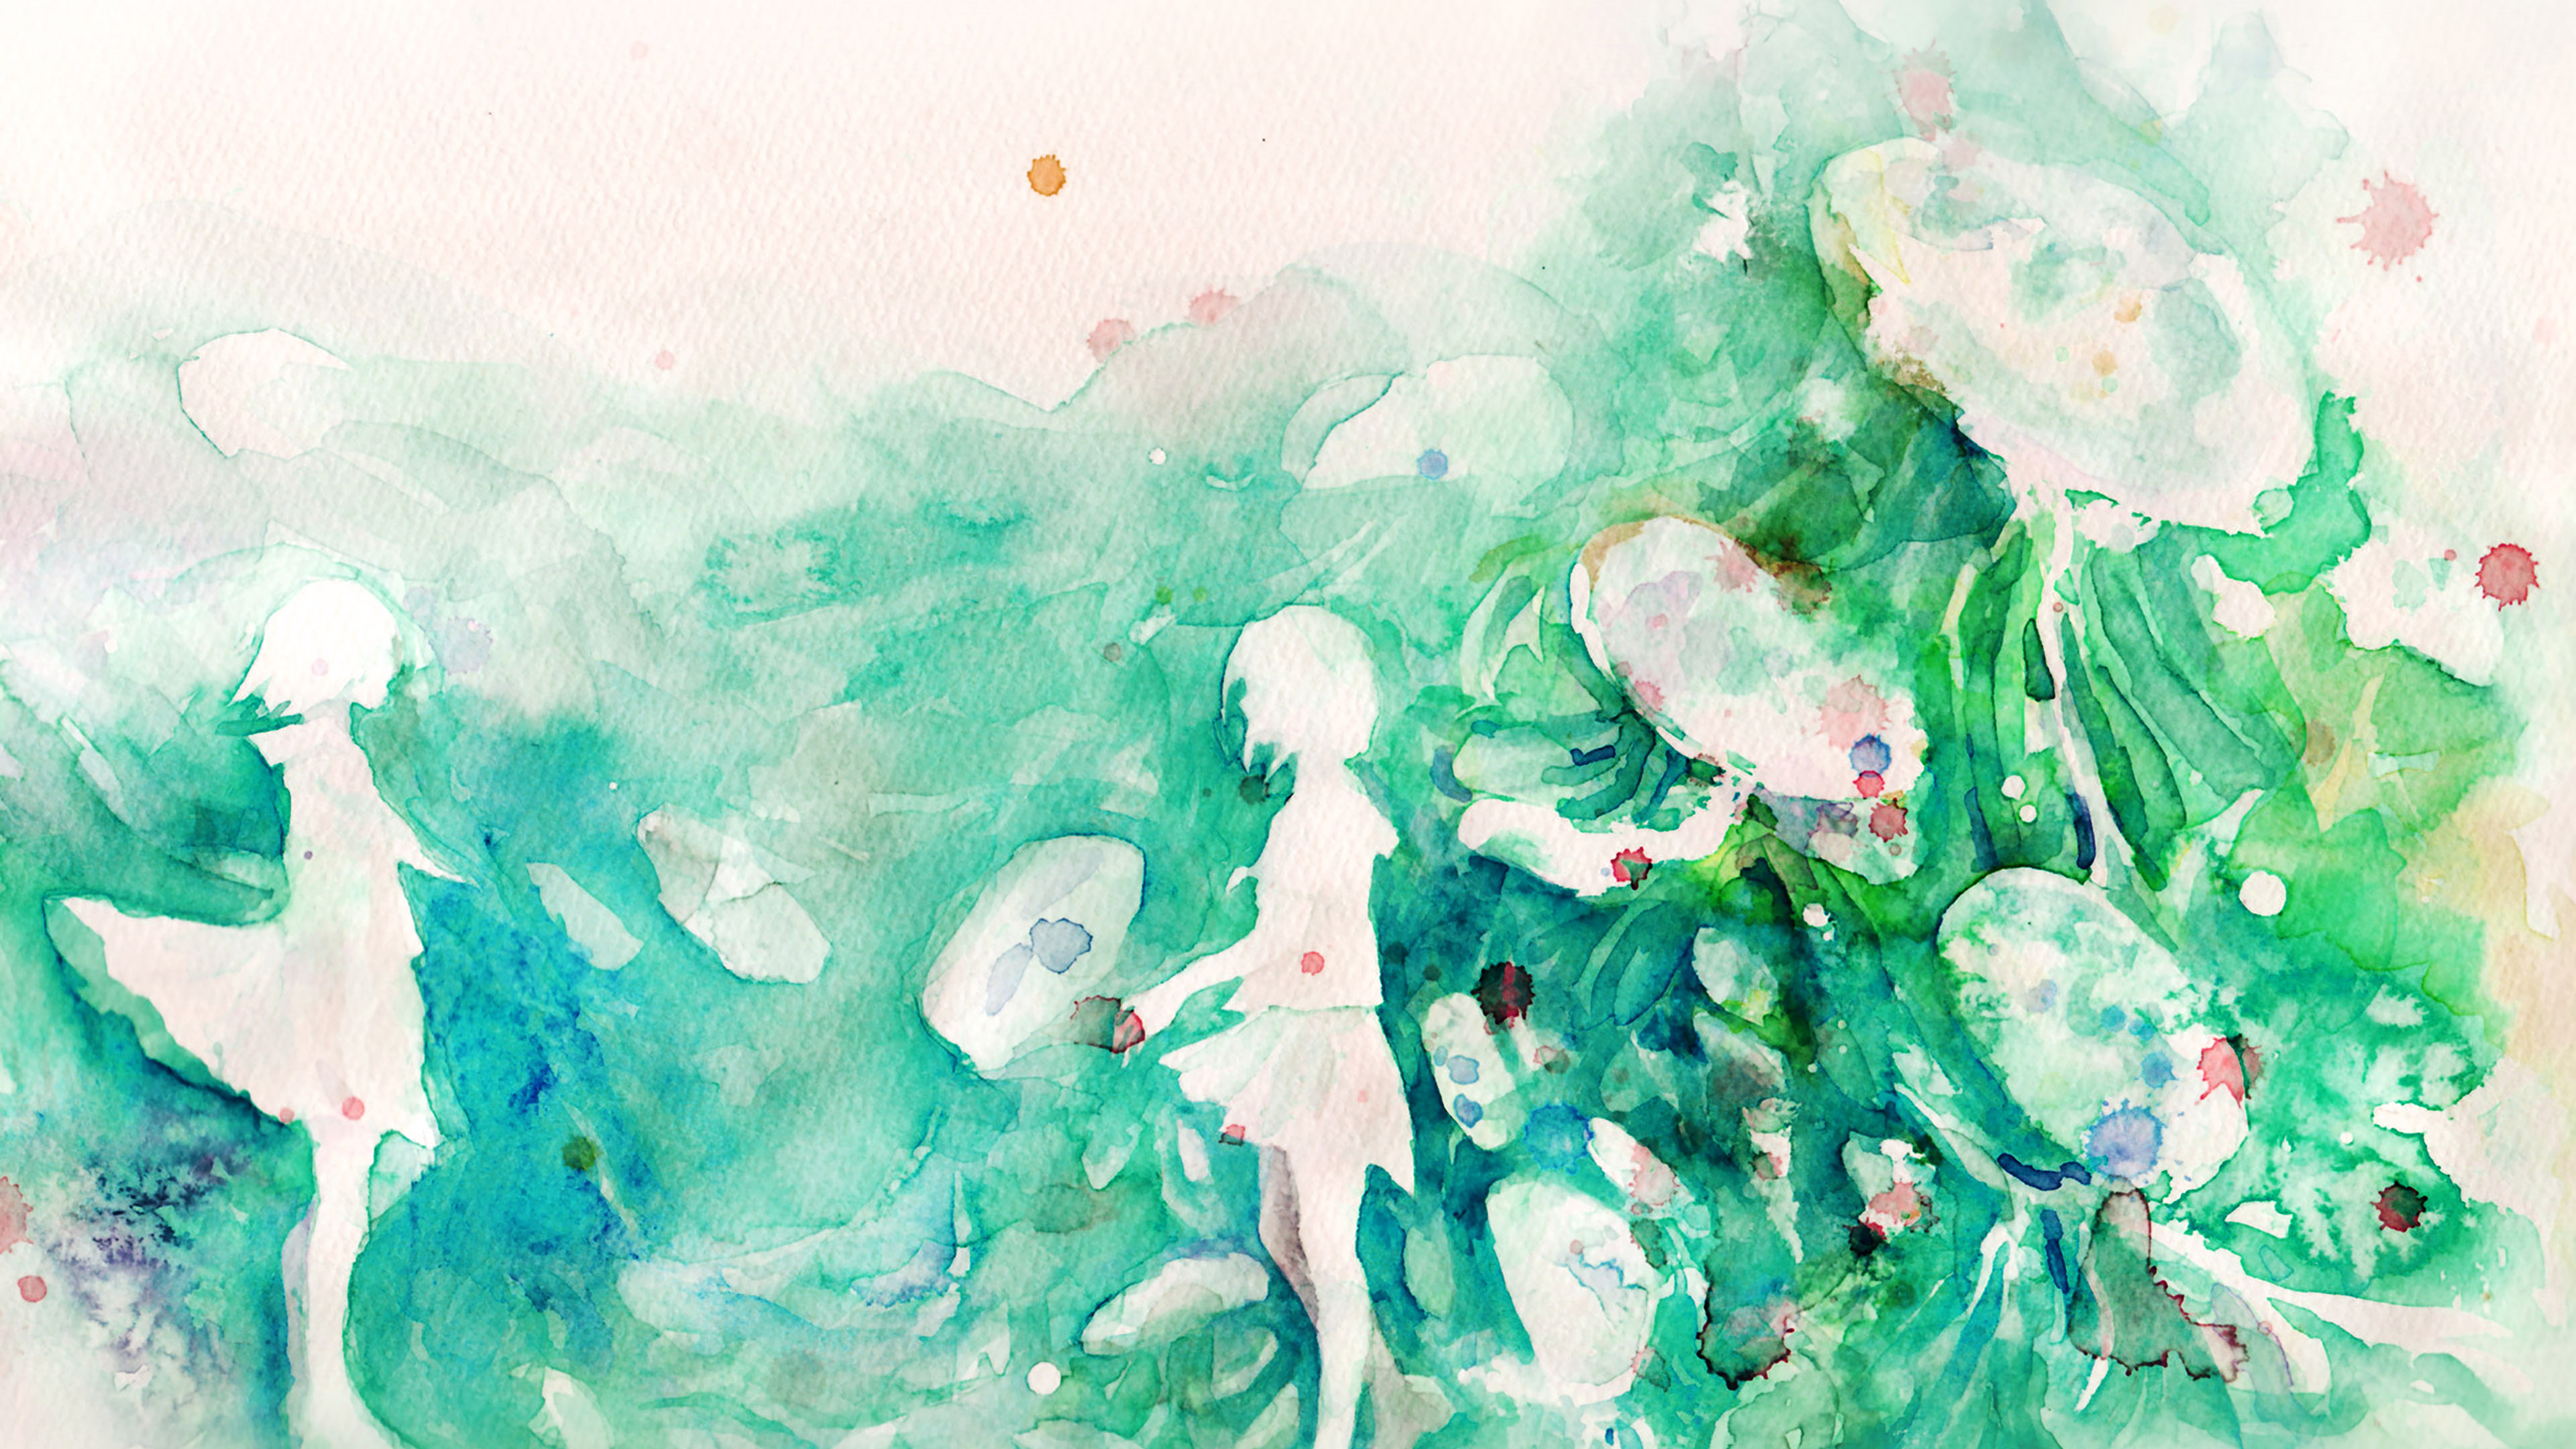 Ai07 Watercolor Green Girl Nature Art Illust Wallpaper